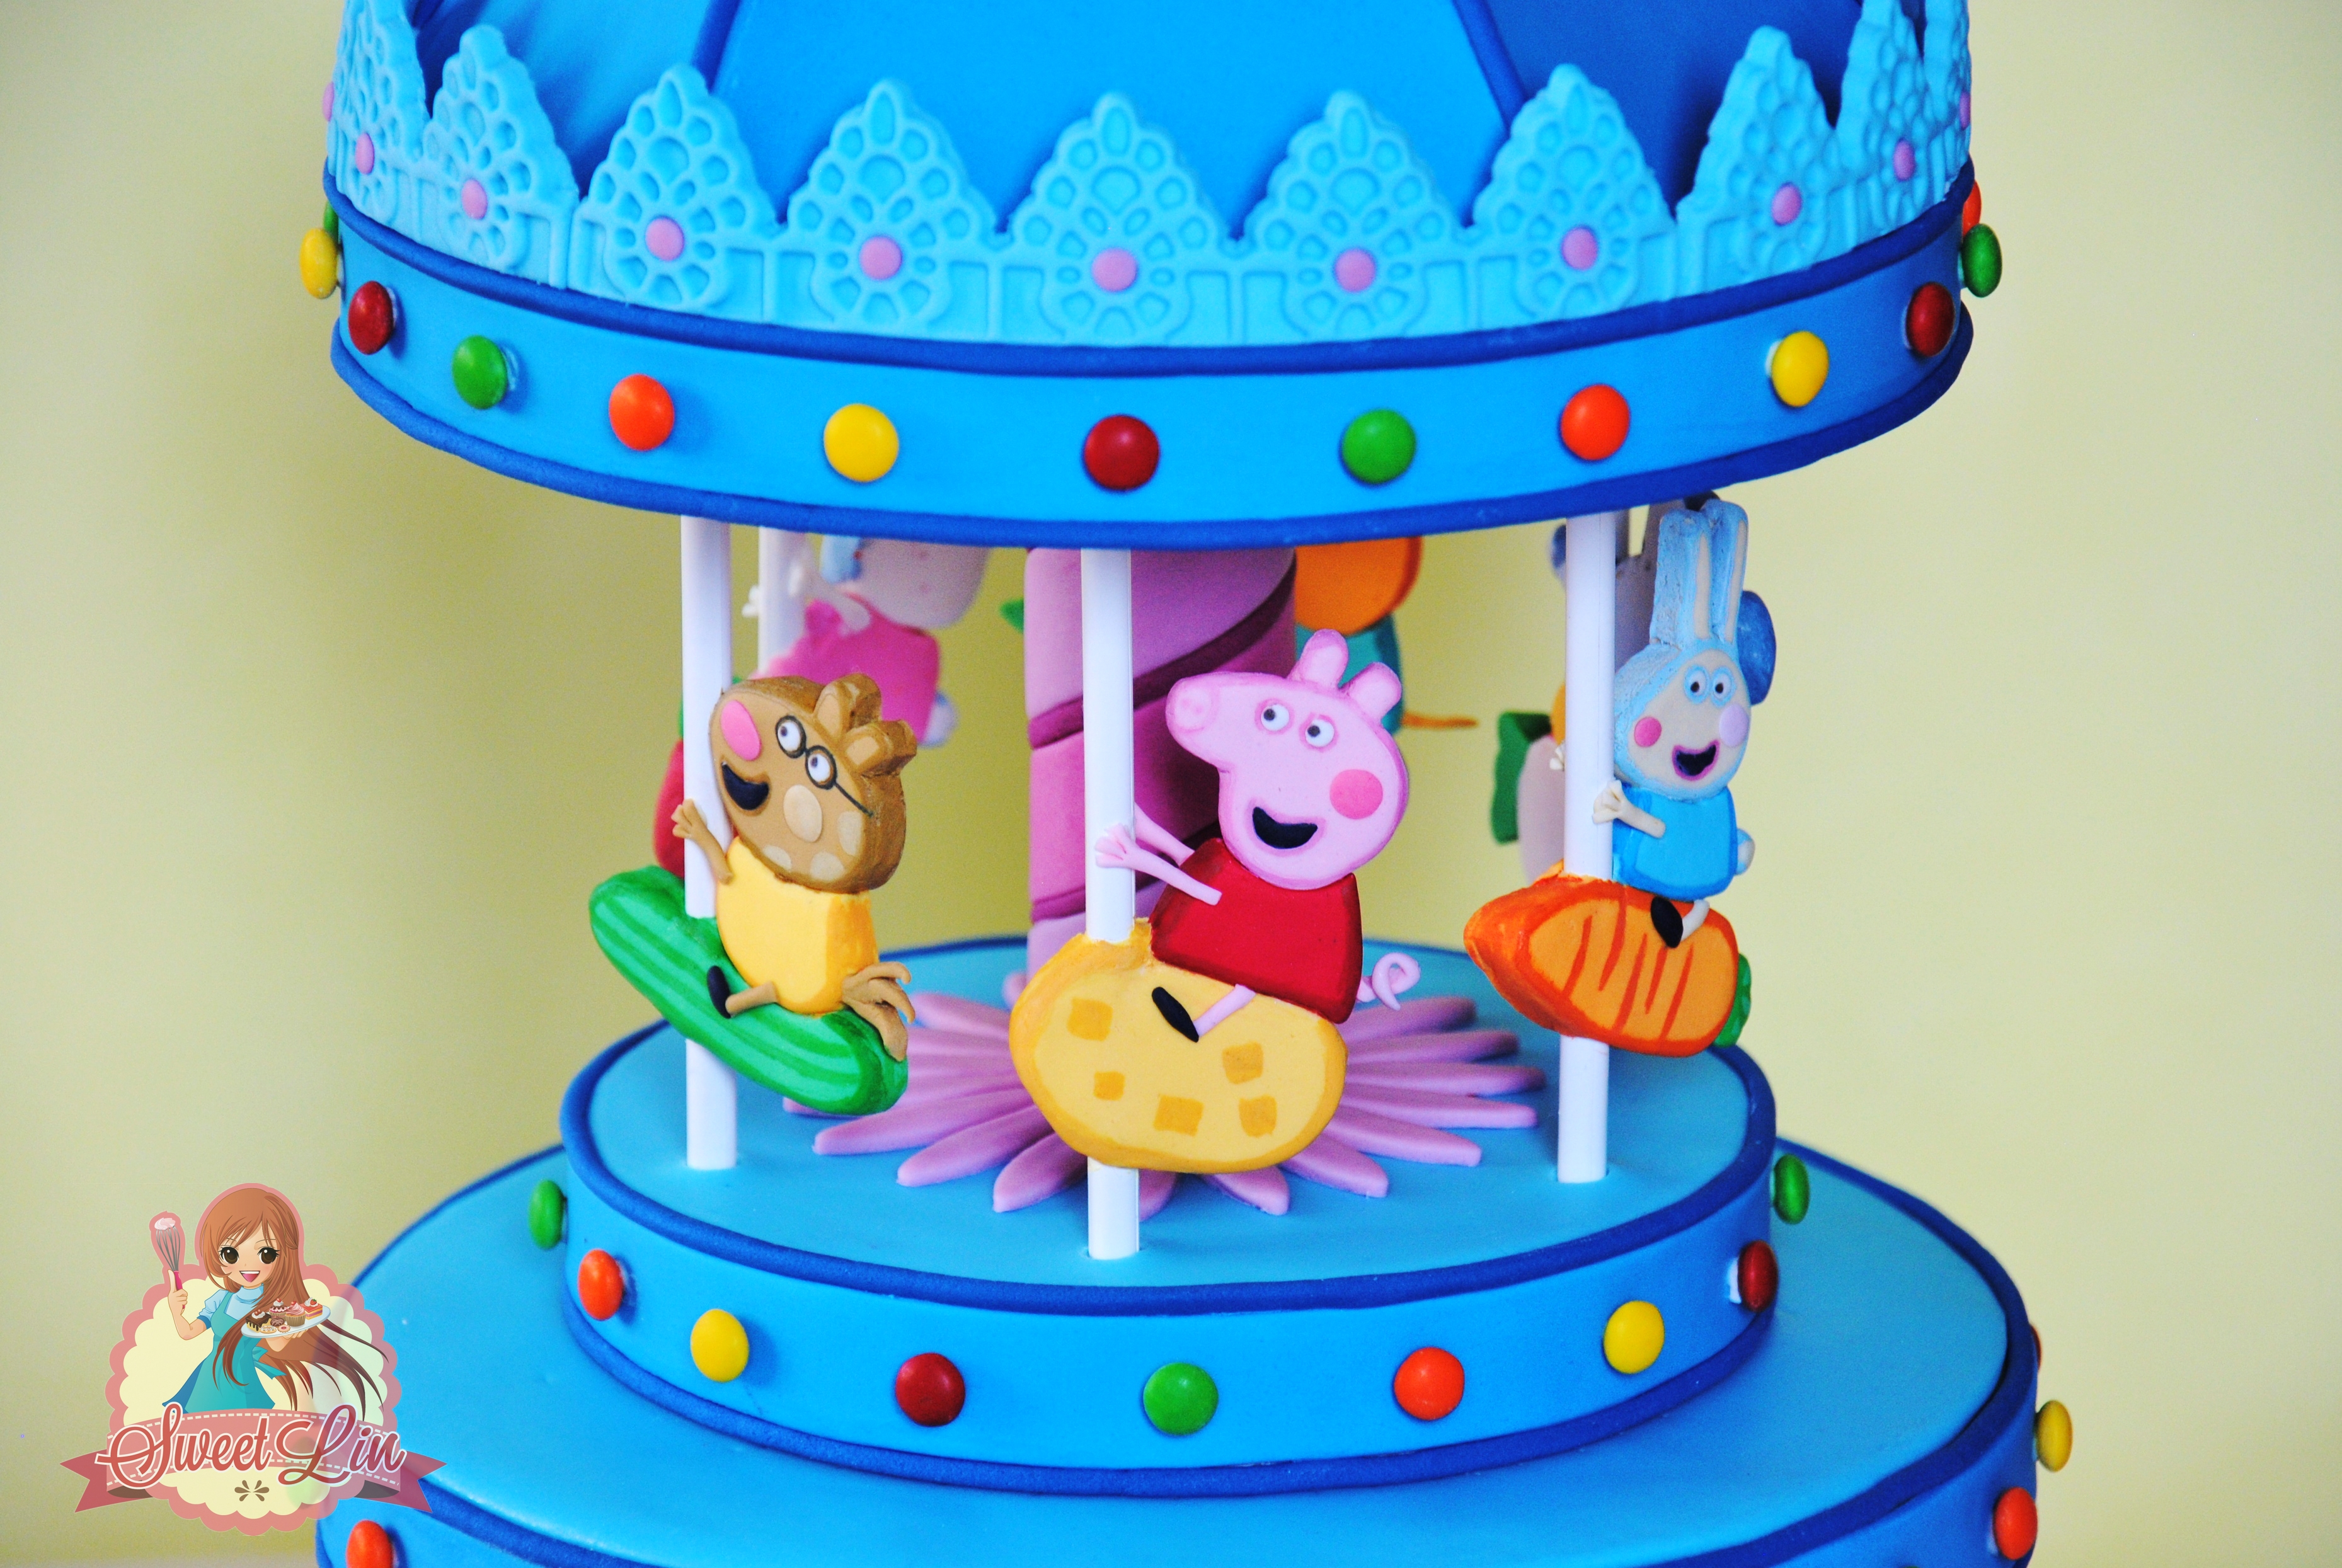 Finally Peppa Pigs Carousel Landed On The Cake I Made The